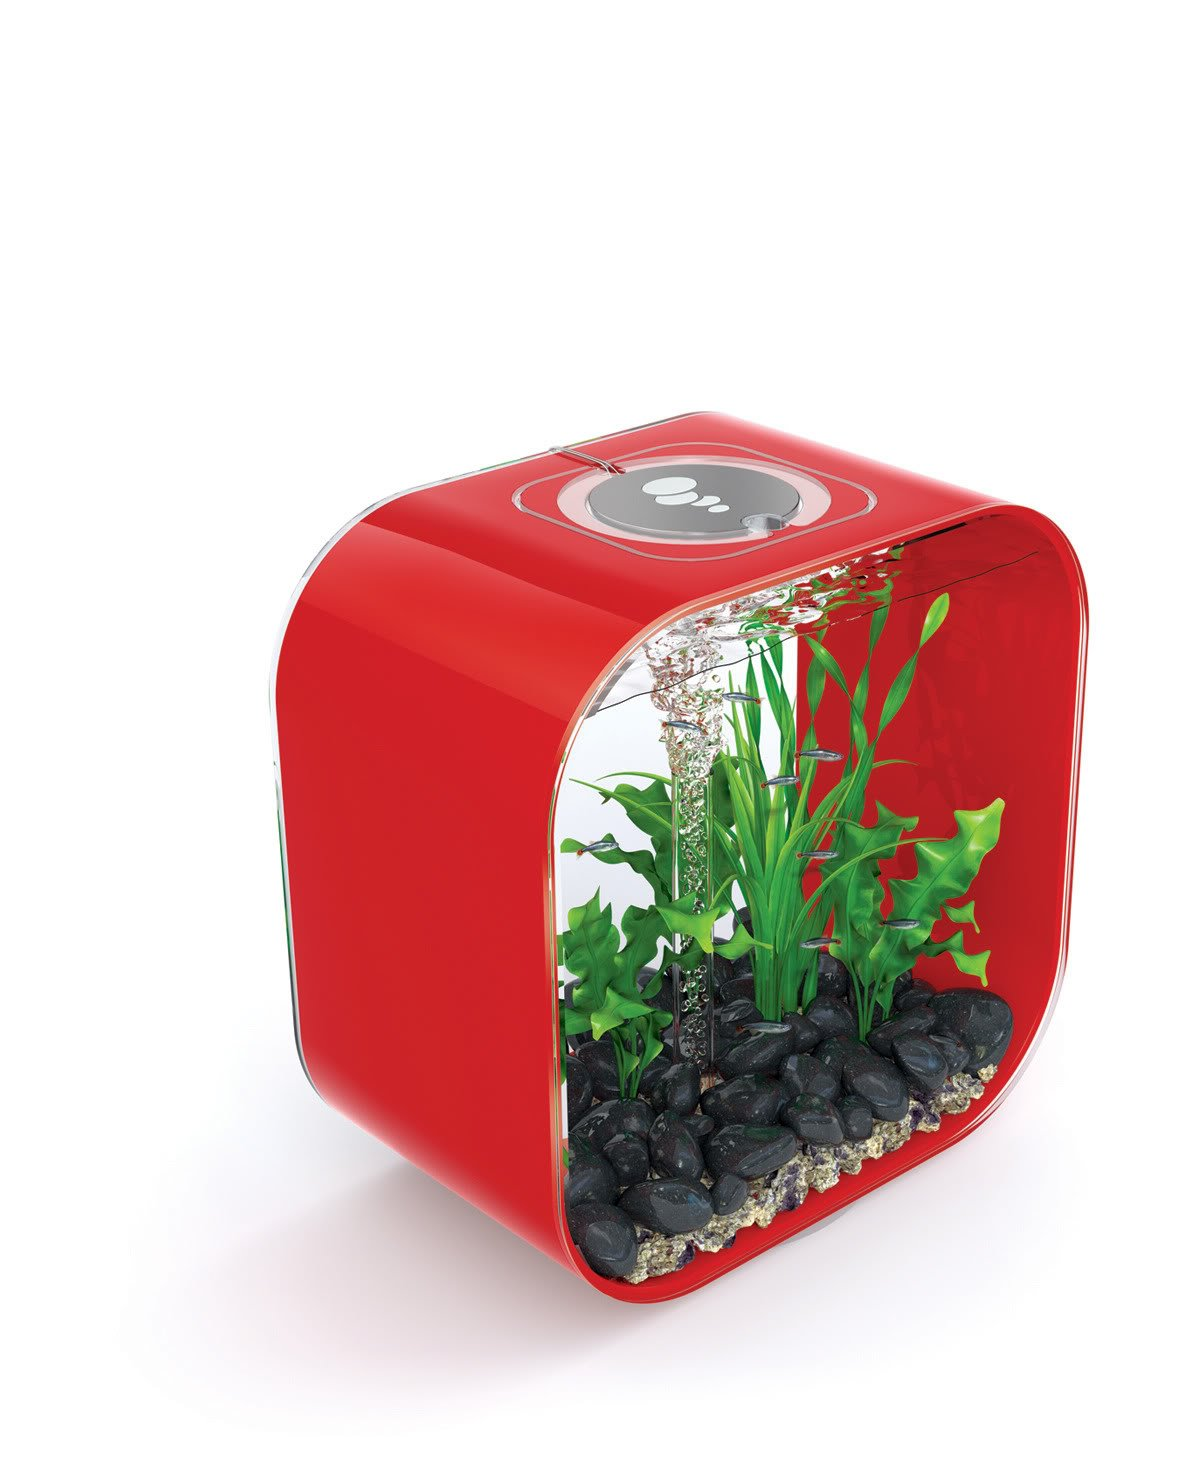 Red biOrb Life Square 30 Cold Water, Red, Intelligent 24hr LED Light